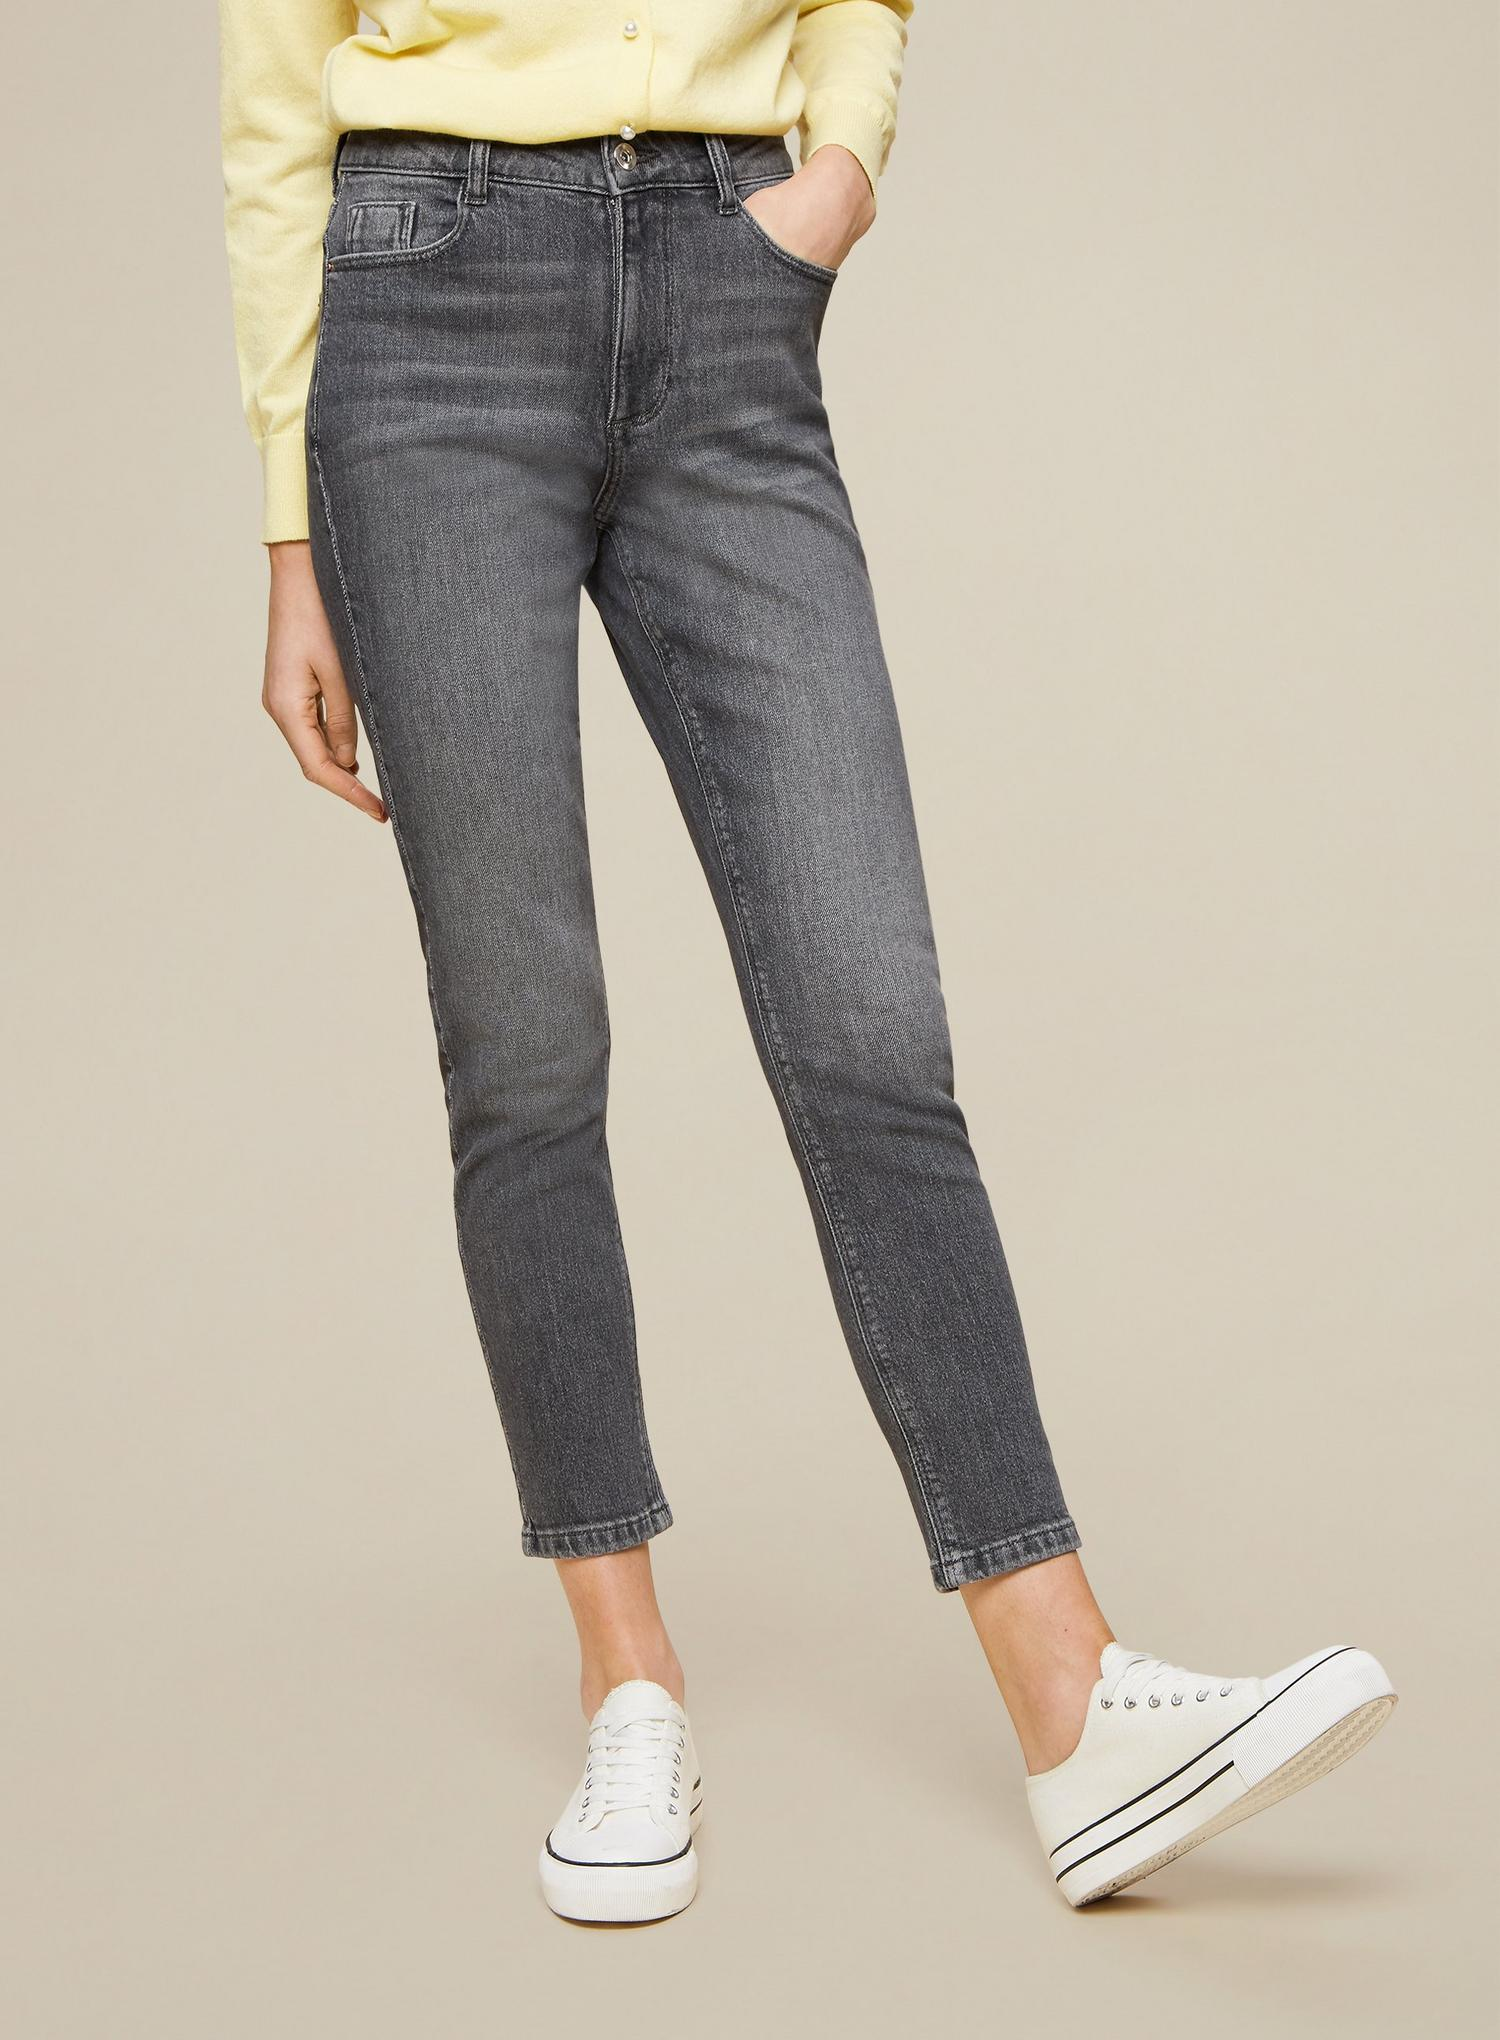 131 Grey Regular Mom Jeans With Organic Cotton image number 1